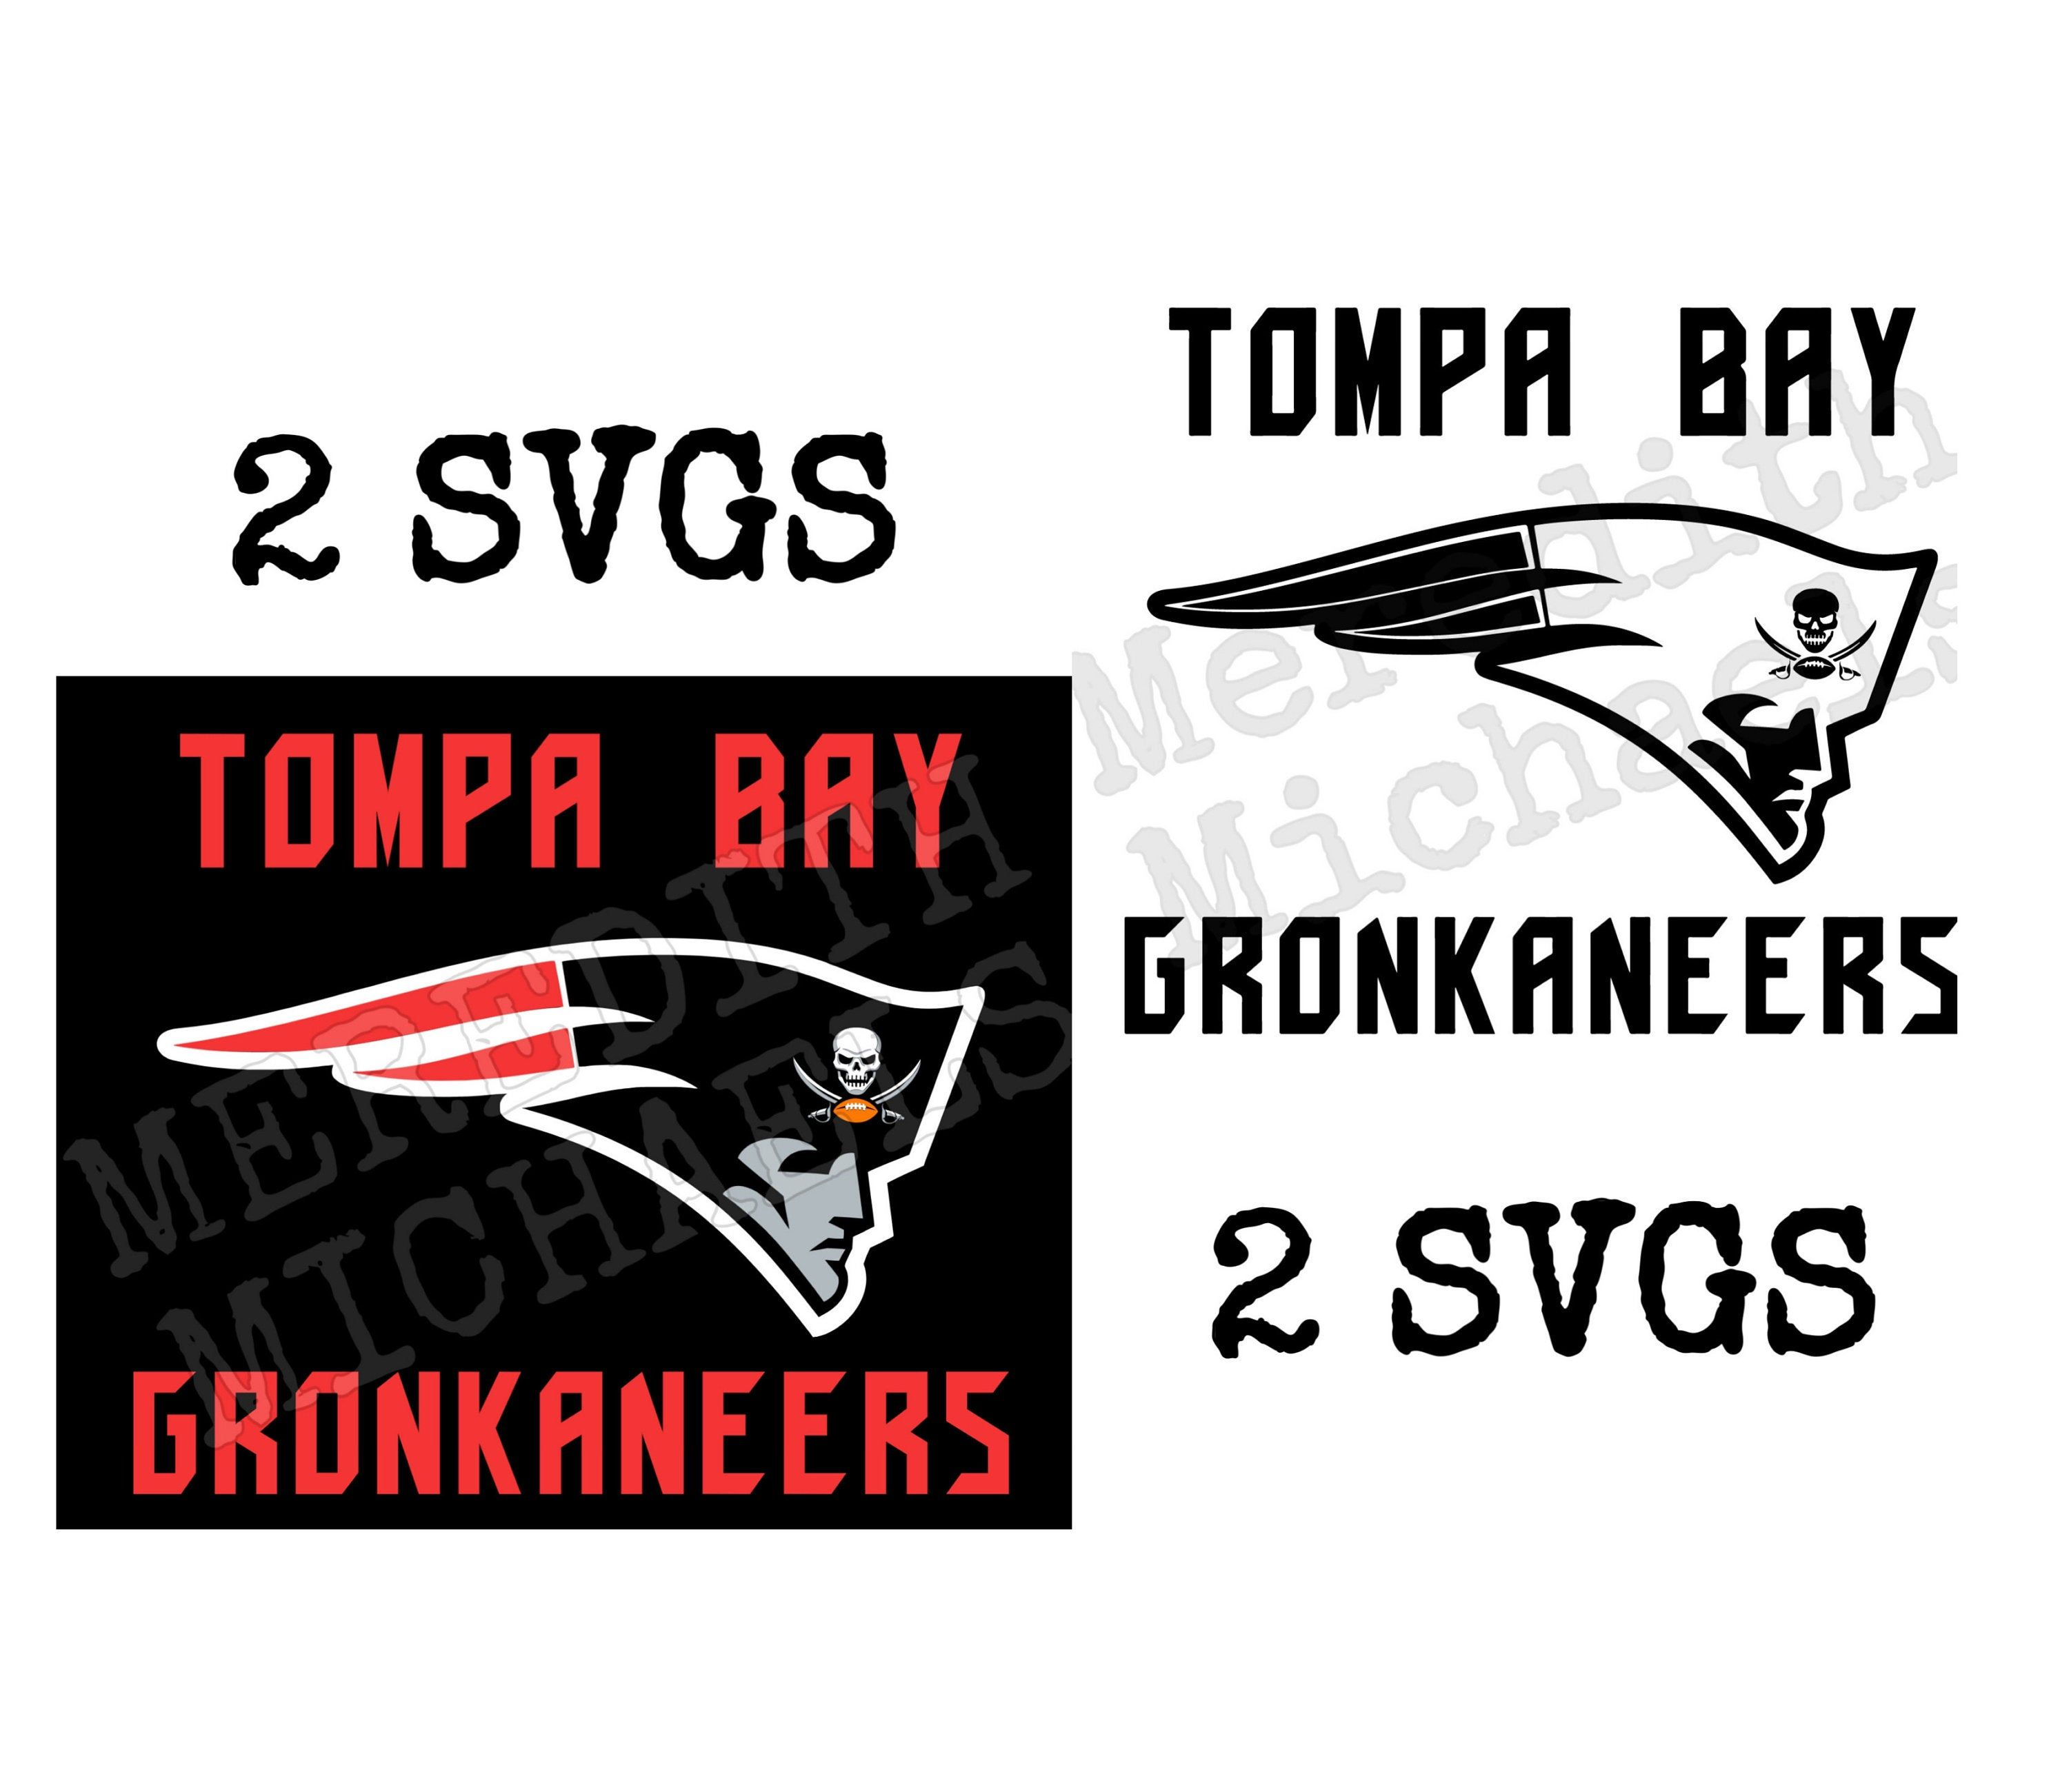 Tompa Bay Gronkaneers Svg With Bucs Skull In Patriots Logo Ex Pats Tom Brady Rob Gronkowski Tbxtb Tampa Bay In 2020 Patriots Logo Vintage Shorts Vintage Levis